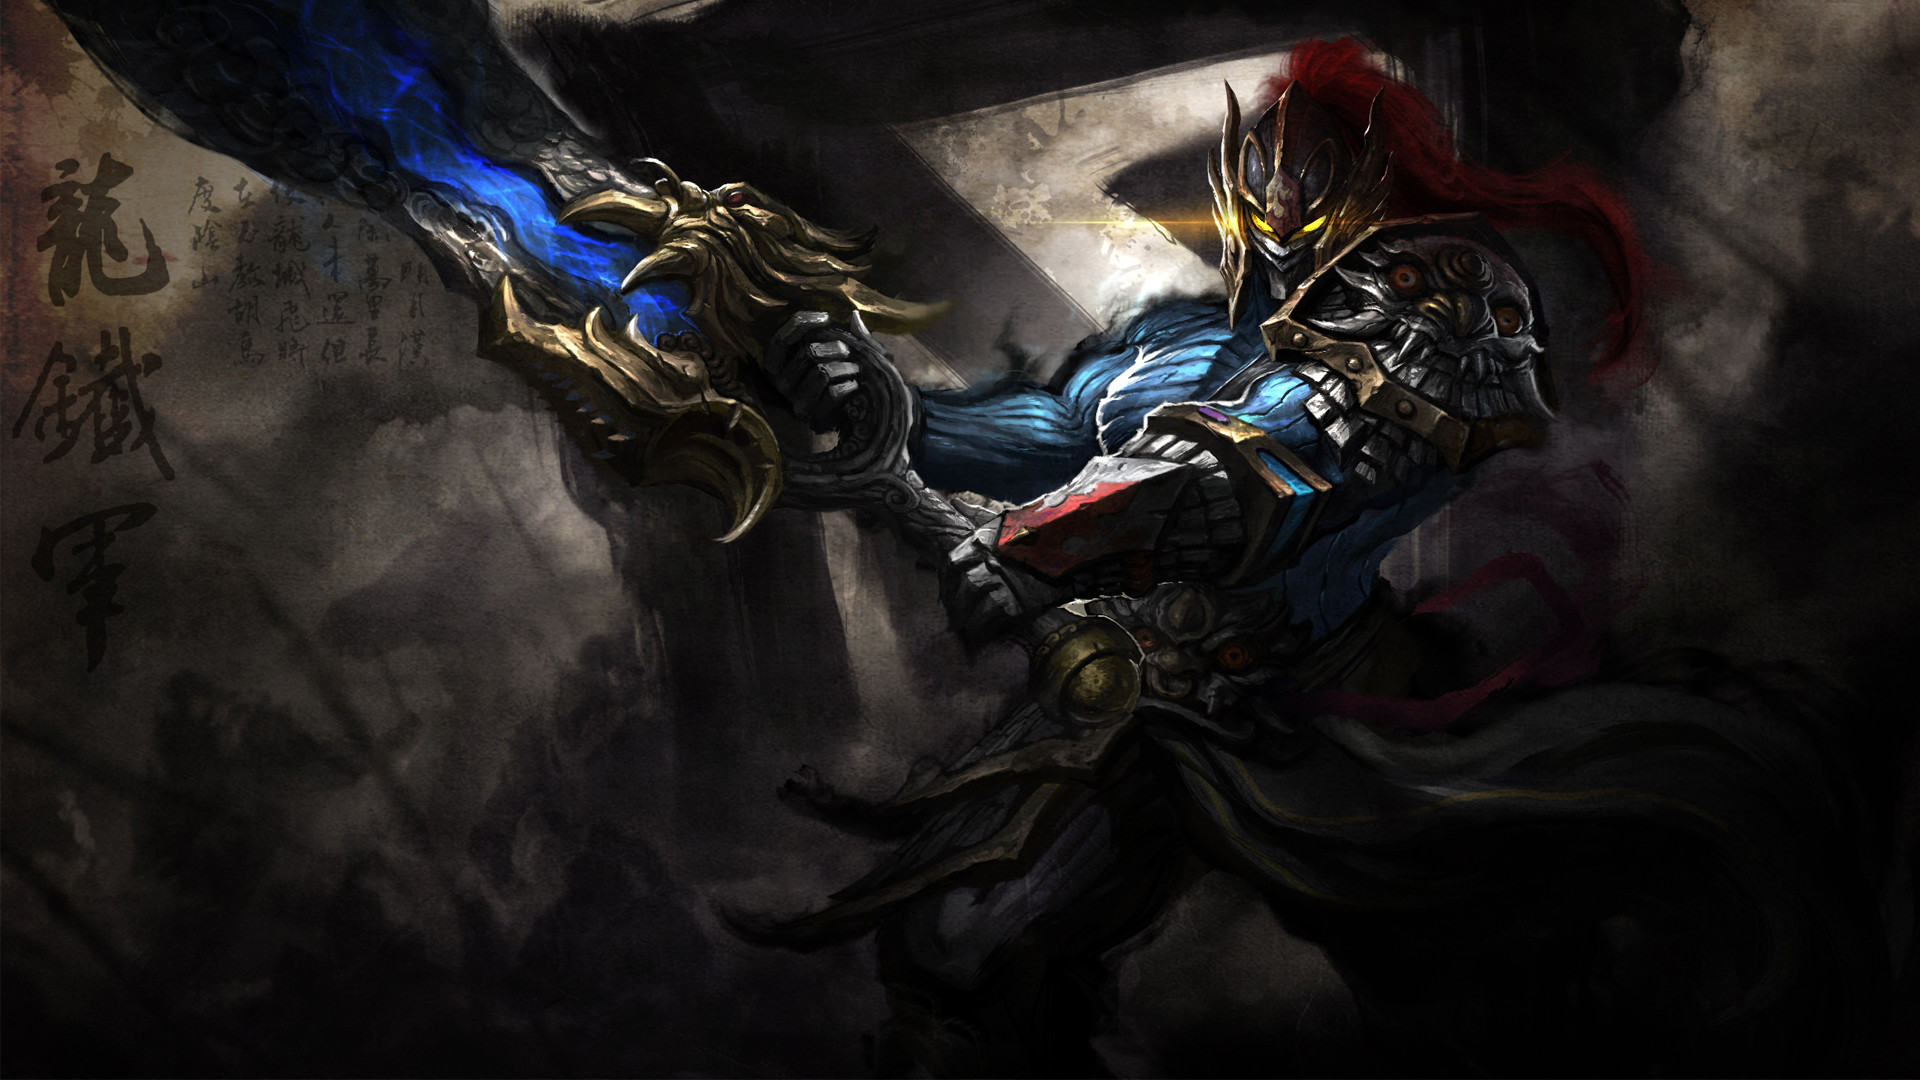 1920x1080 Elegant Sven Art Dota 2 Hd Wallpapers